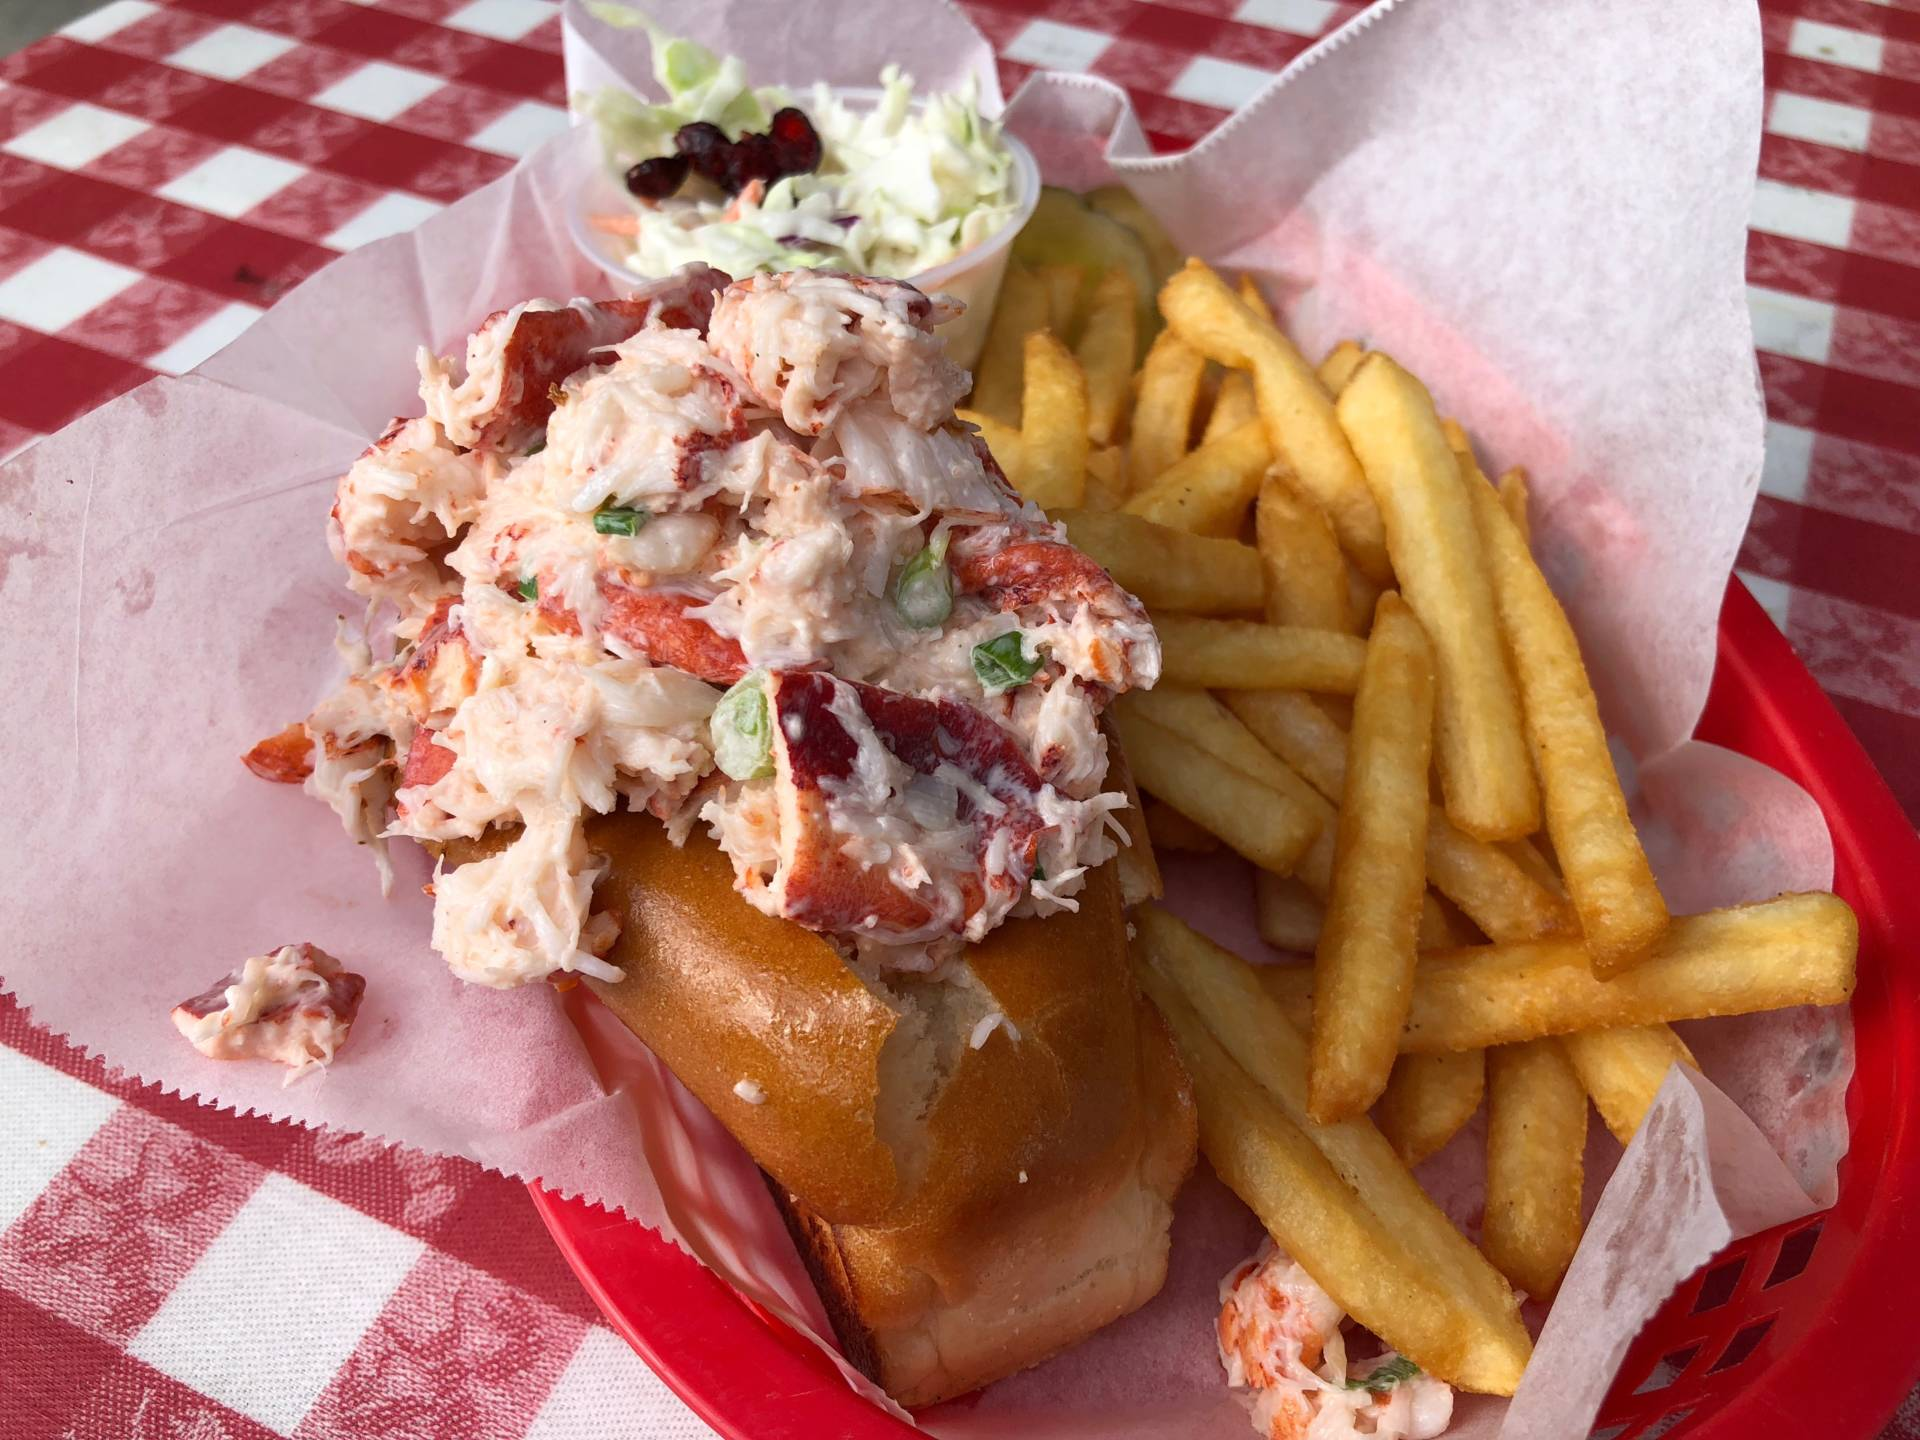 Mayonnaise-based lobster roll at Old Port Lobster Shack.